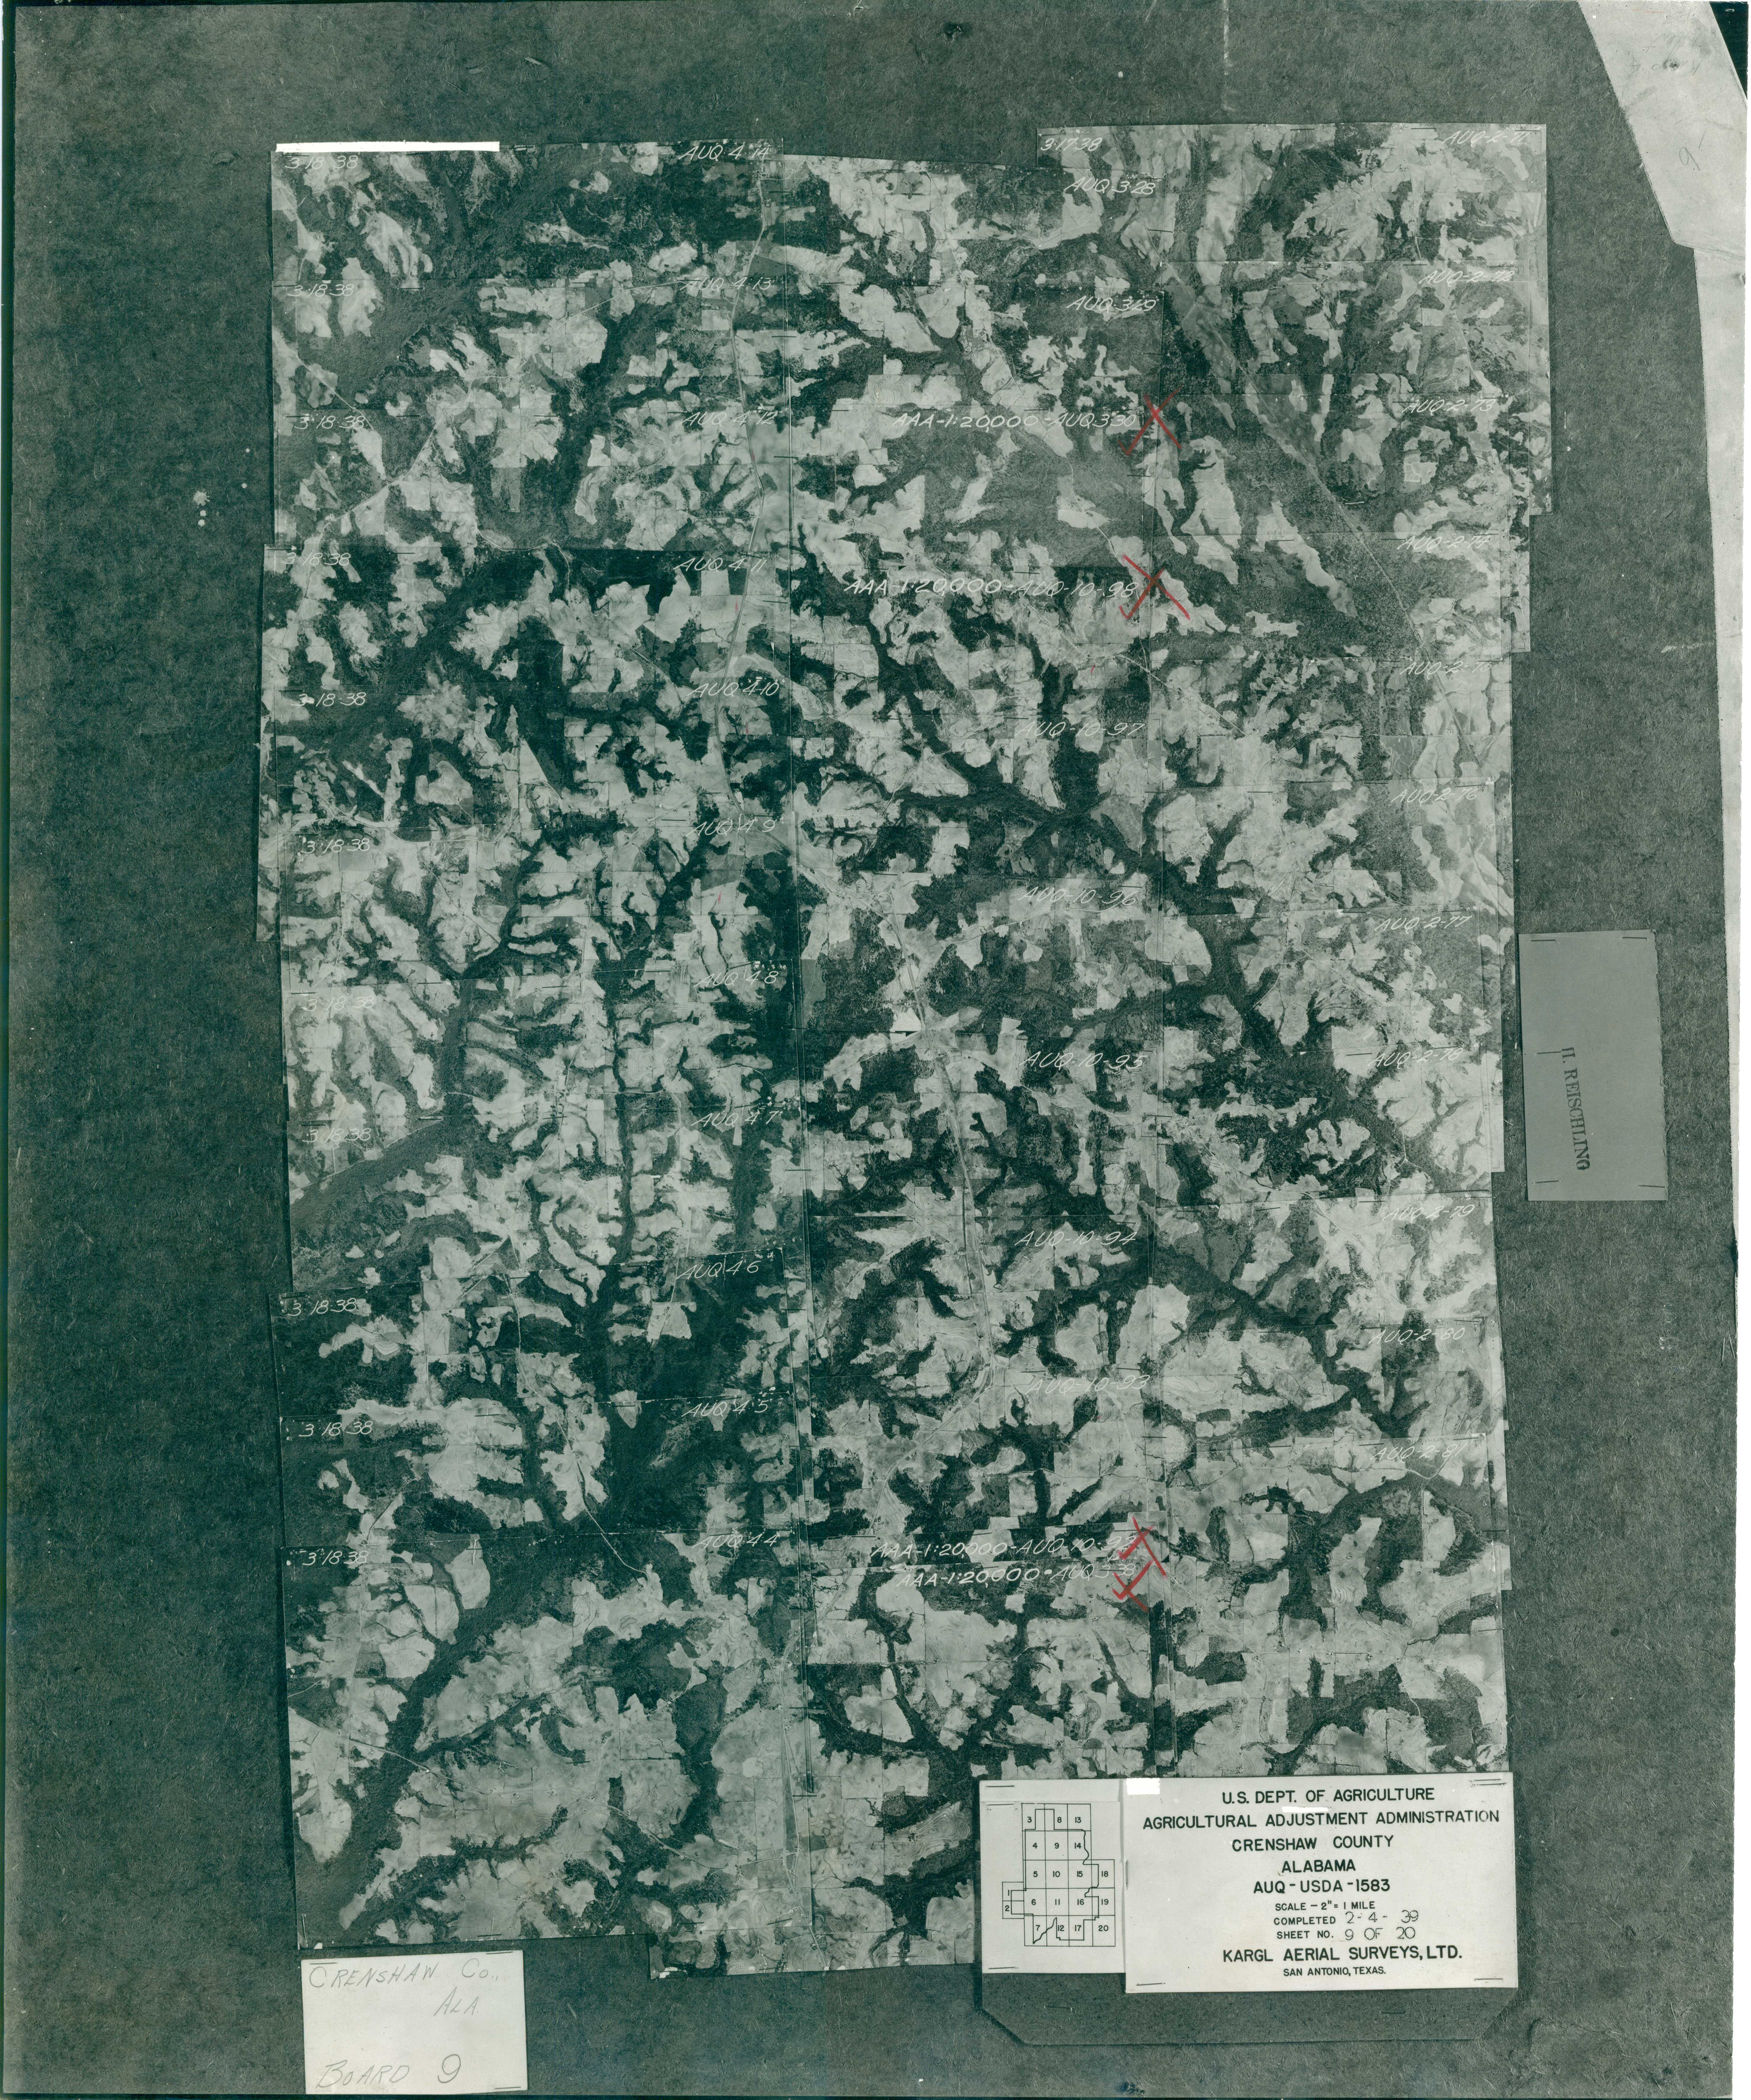 Aerial Photography Index for Crenshaw County, Alabama, Sheet 9